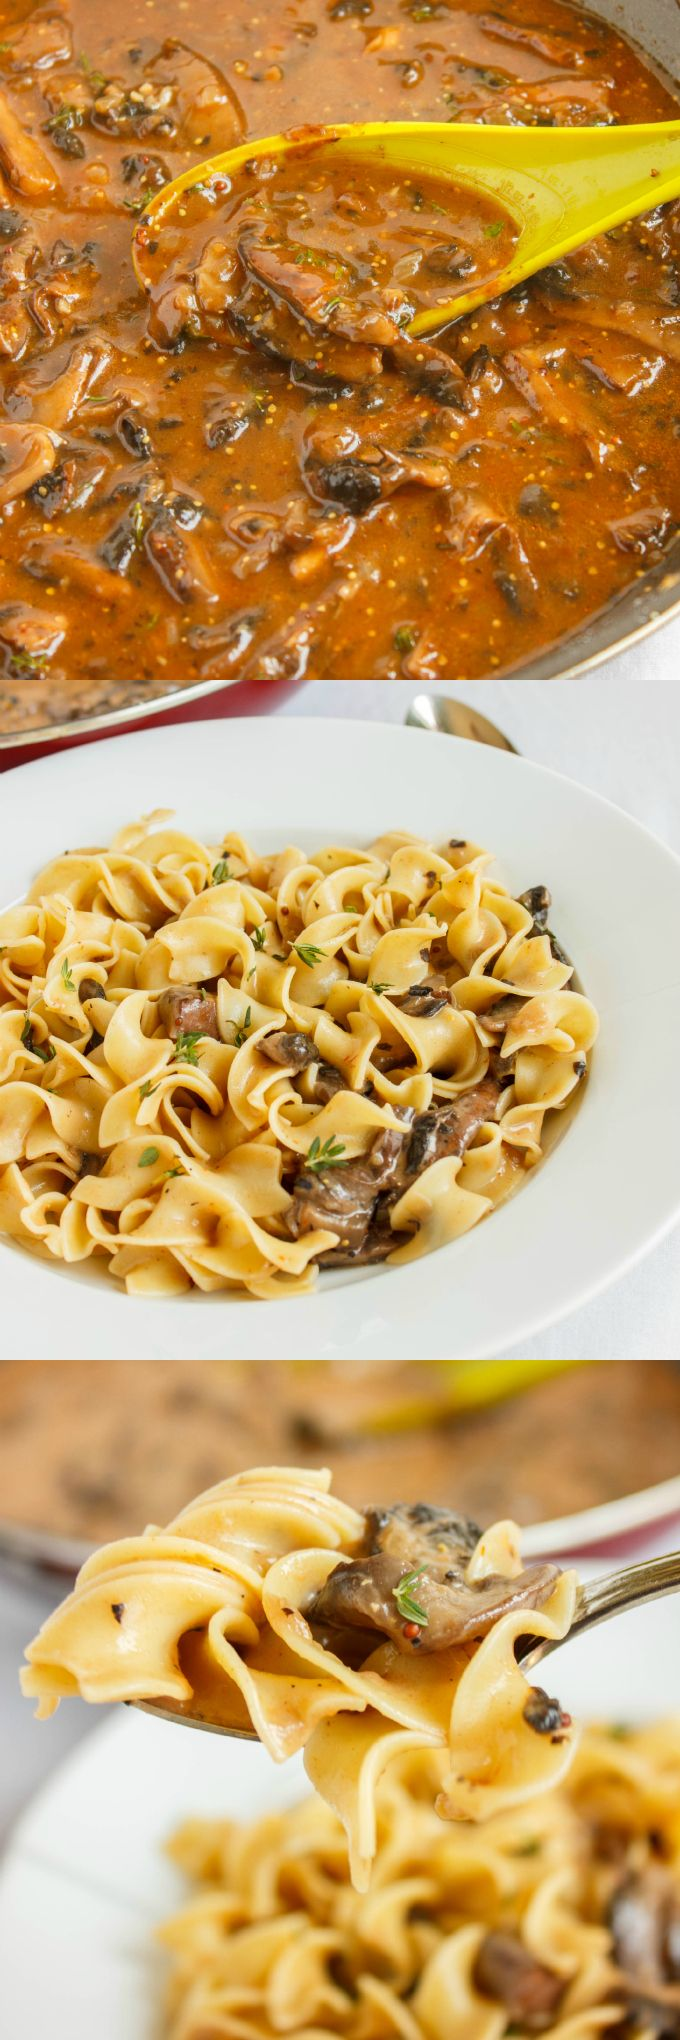 Mushroom Stroganoff (Vegetarian)  A yummy vegetarian alternative although don't expect for it to taste like beef stroganoff.